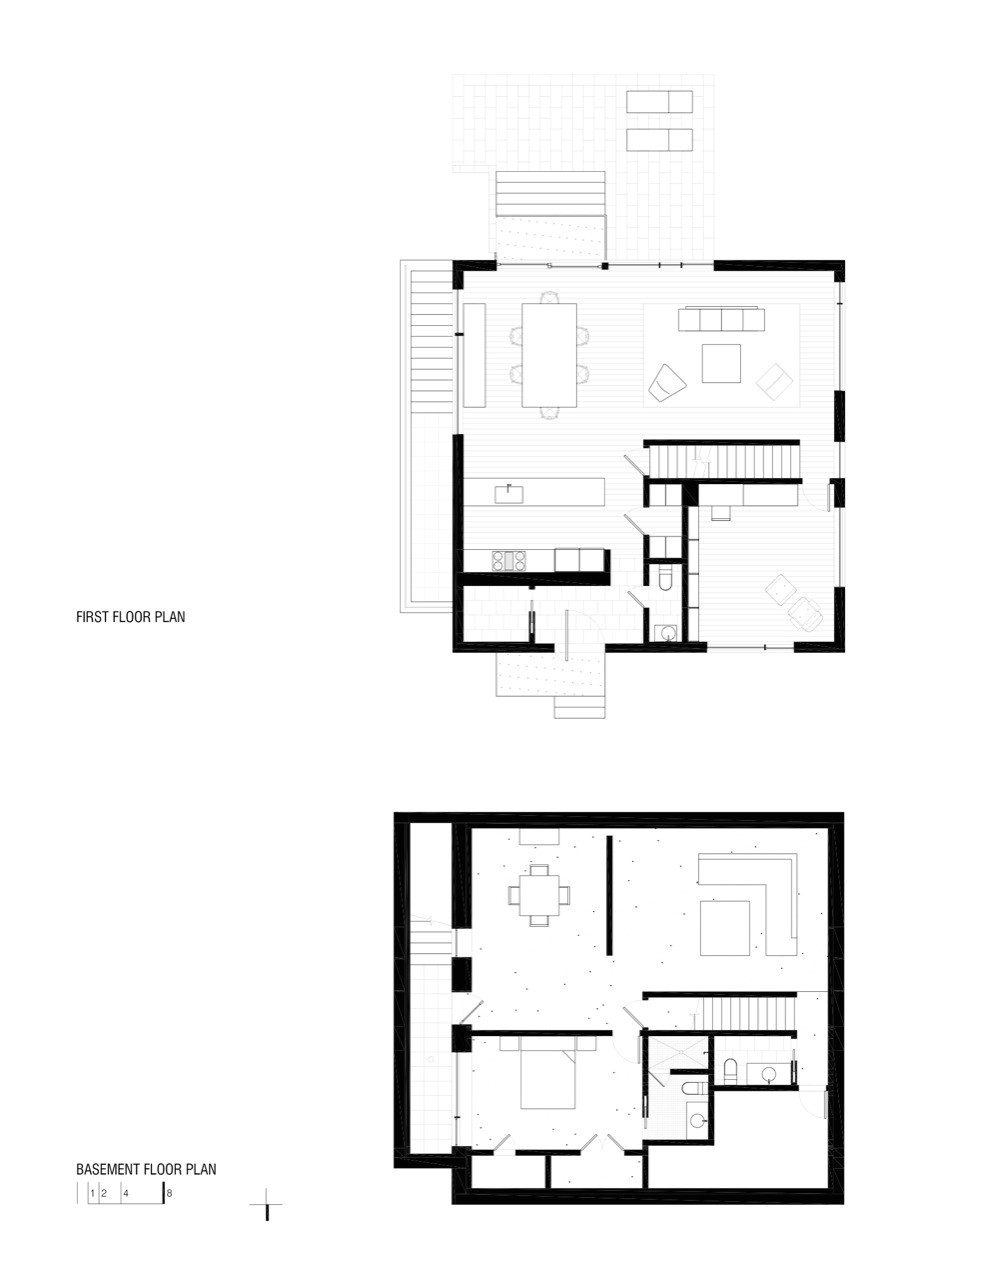 50071d8e28ba0d4148001097 hampden lane house robert gurney architect floor plans